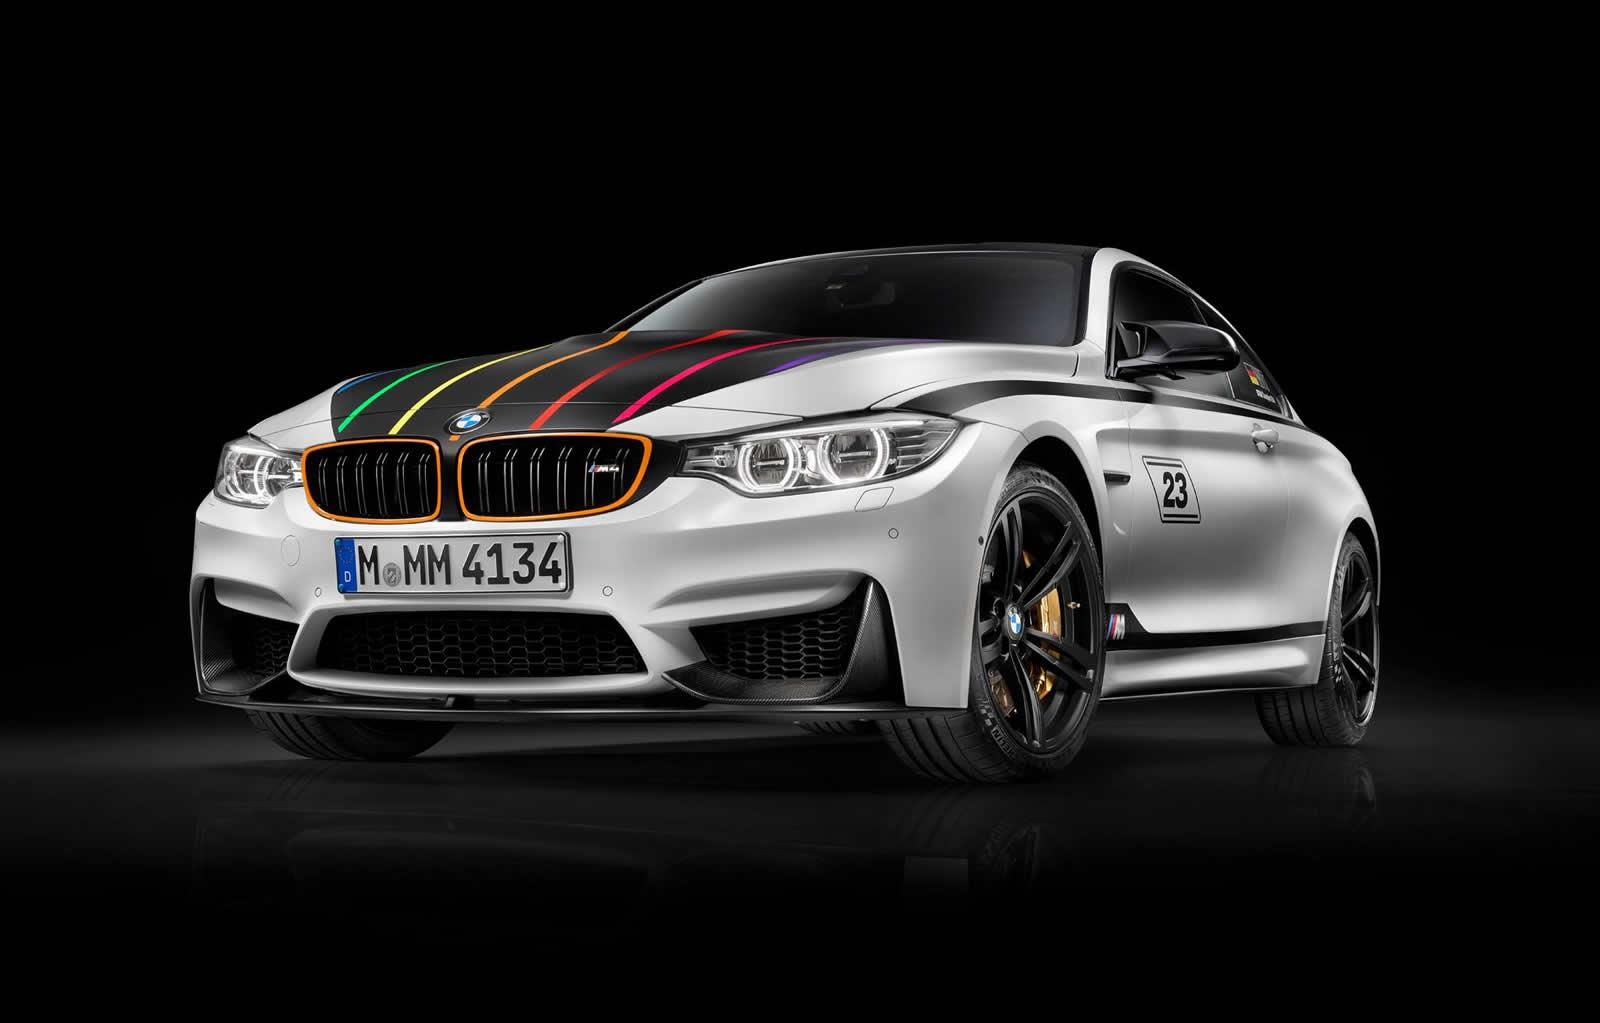 Bmw Cars News M4 Dtm Champion Edition Unveiled